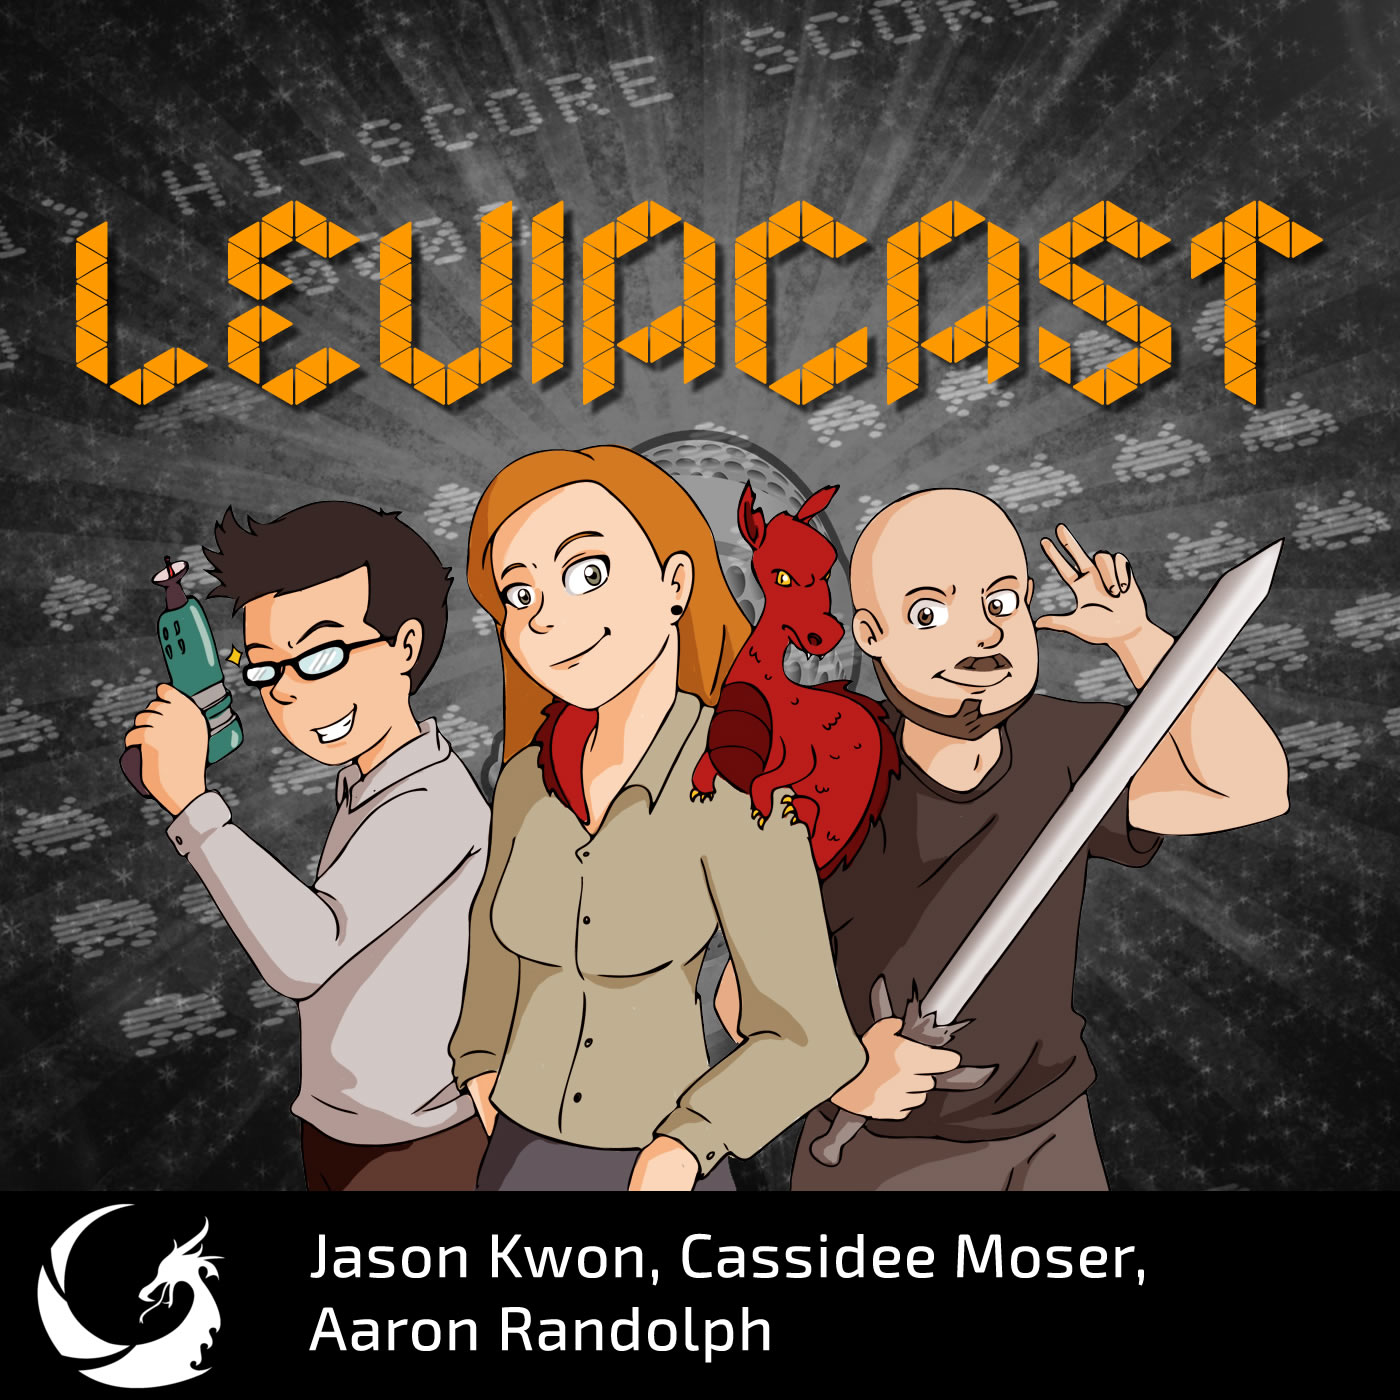 Leviacast Ep. 94: Shadow Warrior, OlliOlli, and Metal Gear Solid